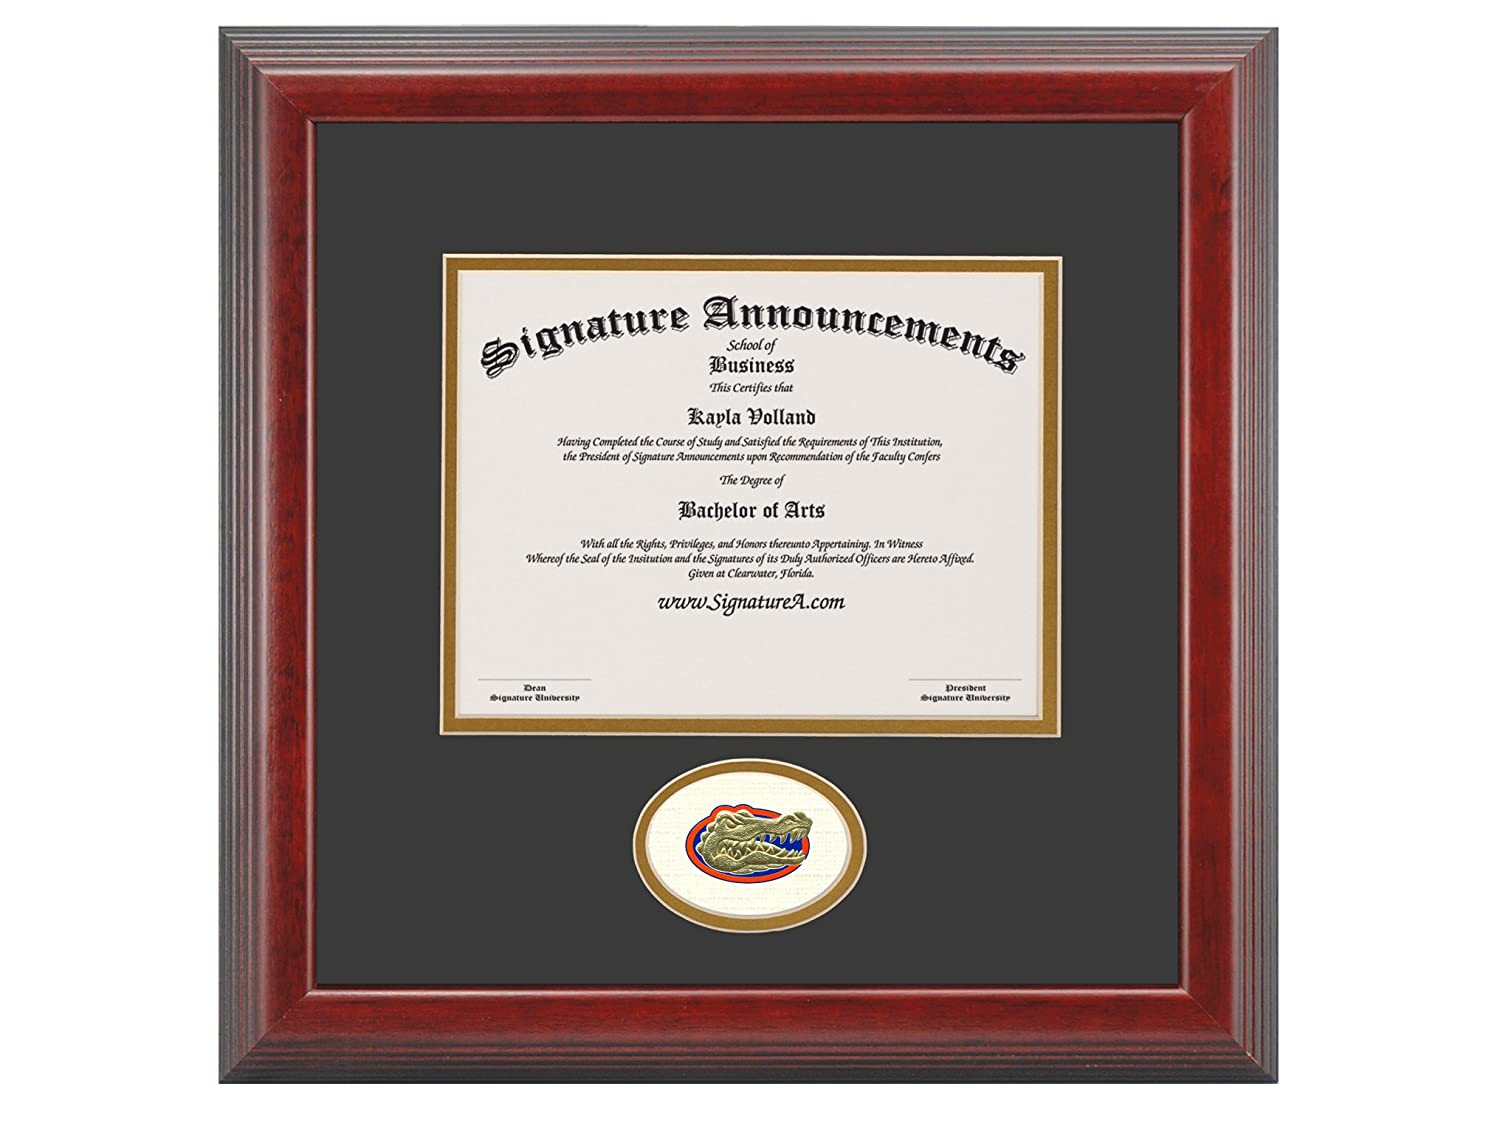 Cherry Signature Announcements University-of-Florida-College-of-Dentistry Sculpted Foil Seal Graduation Diploma Frame 20 x 20